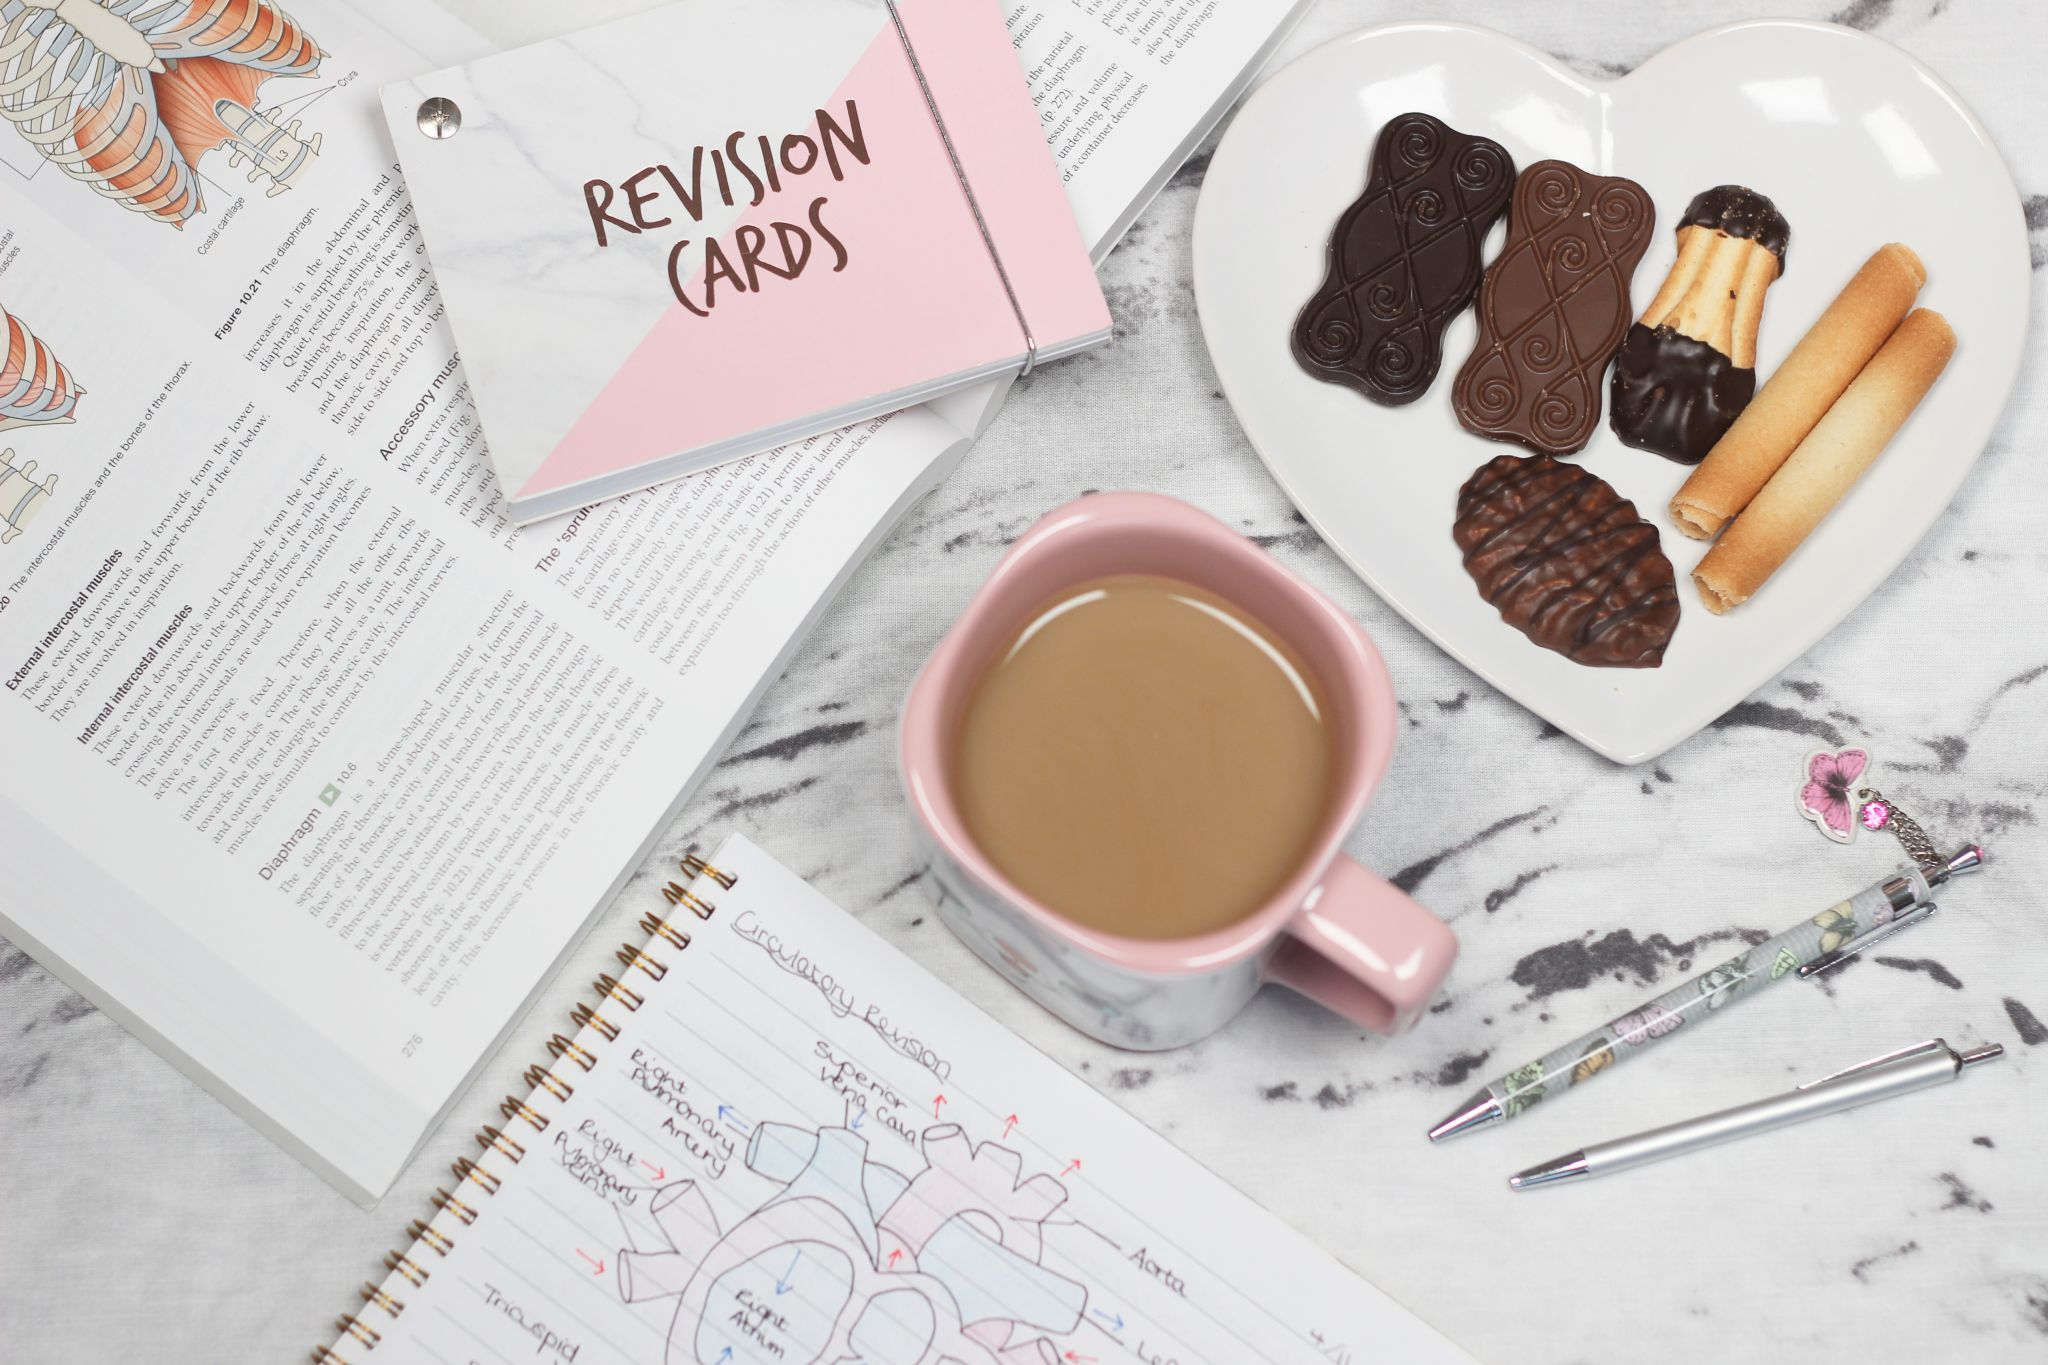 Student Midwife Revision Cards, Coffee and Biscuits